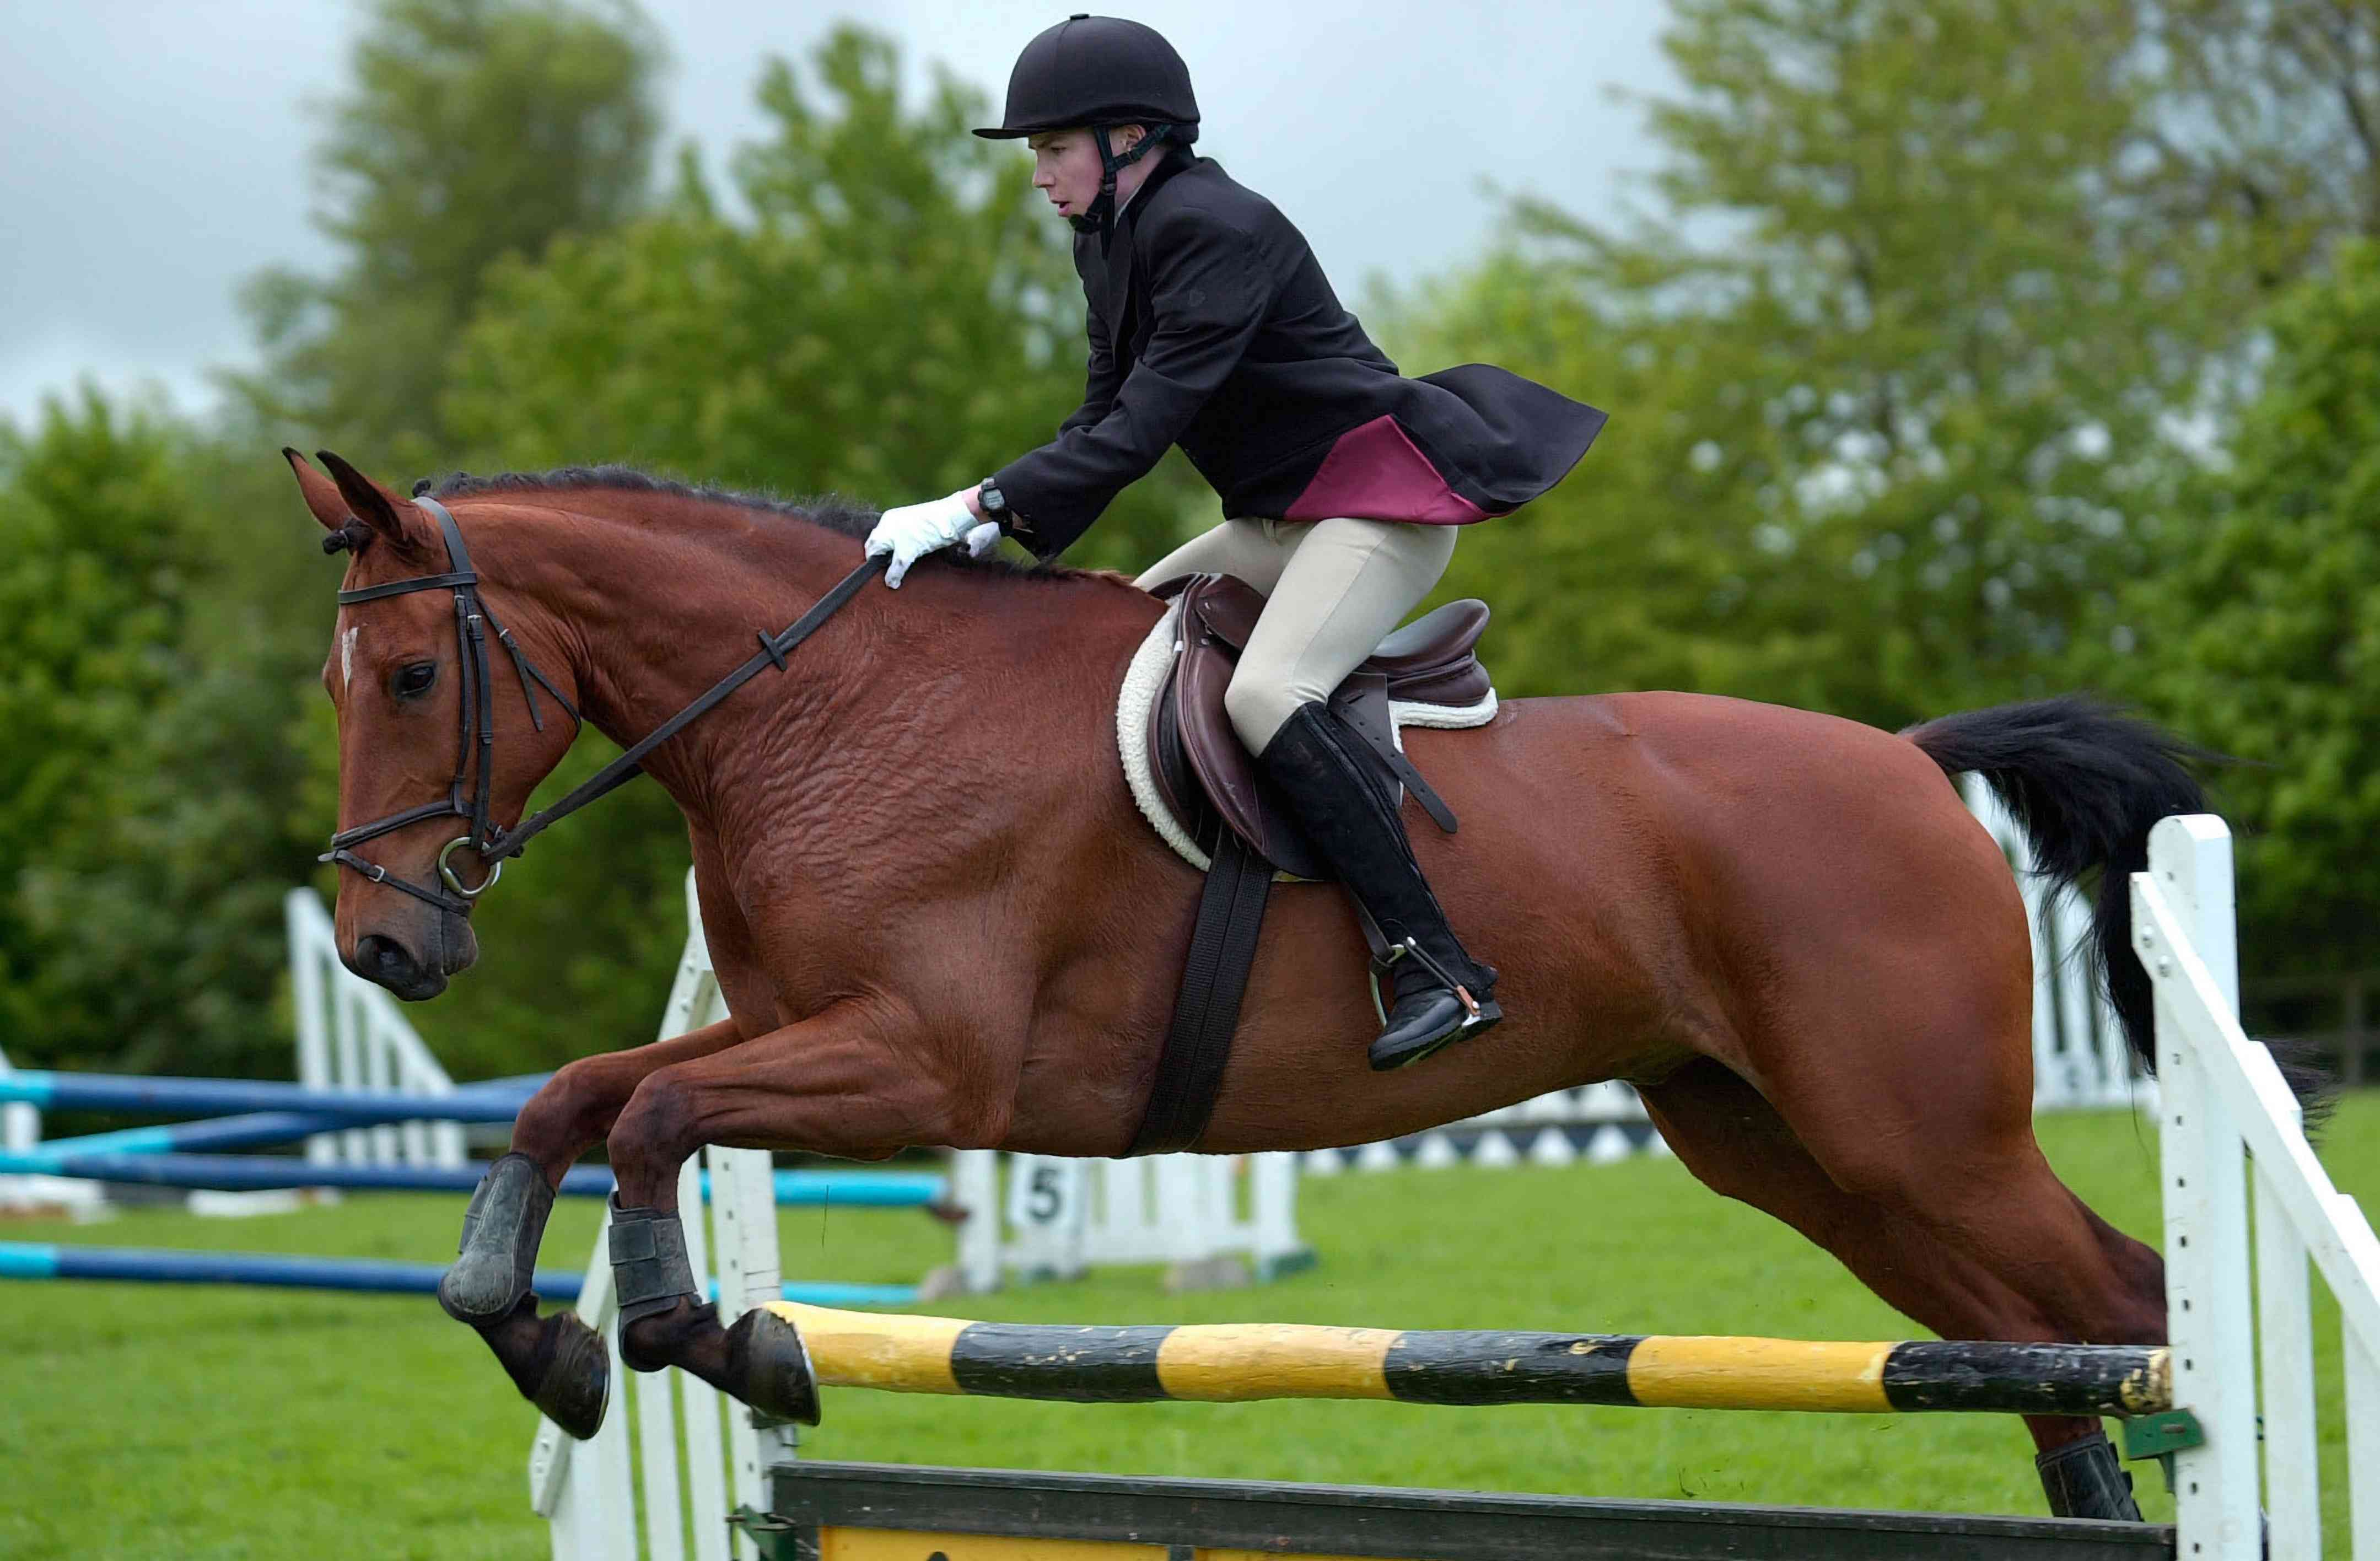 Cleveland Bay competing in a showjumping class in a horse show